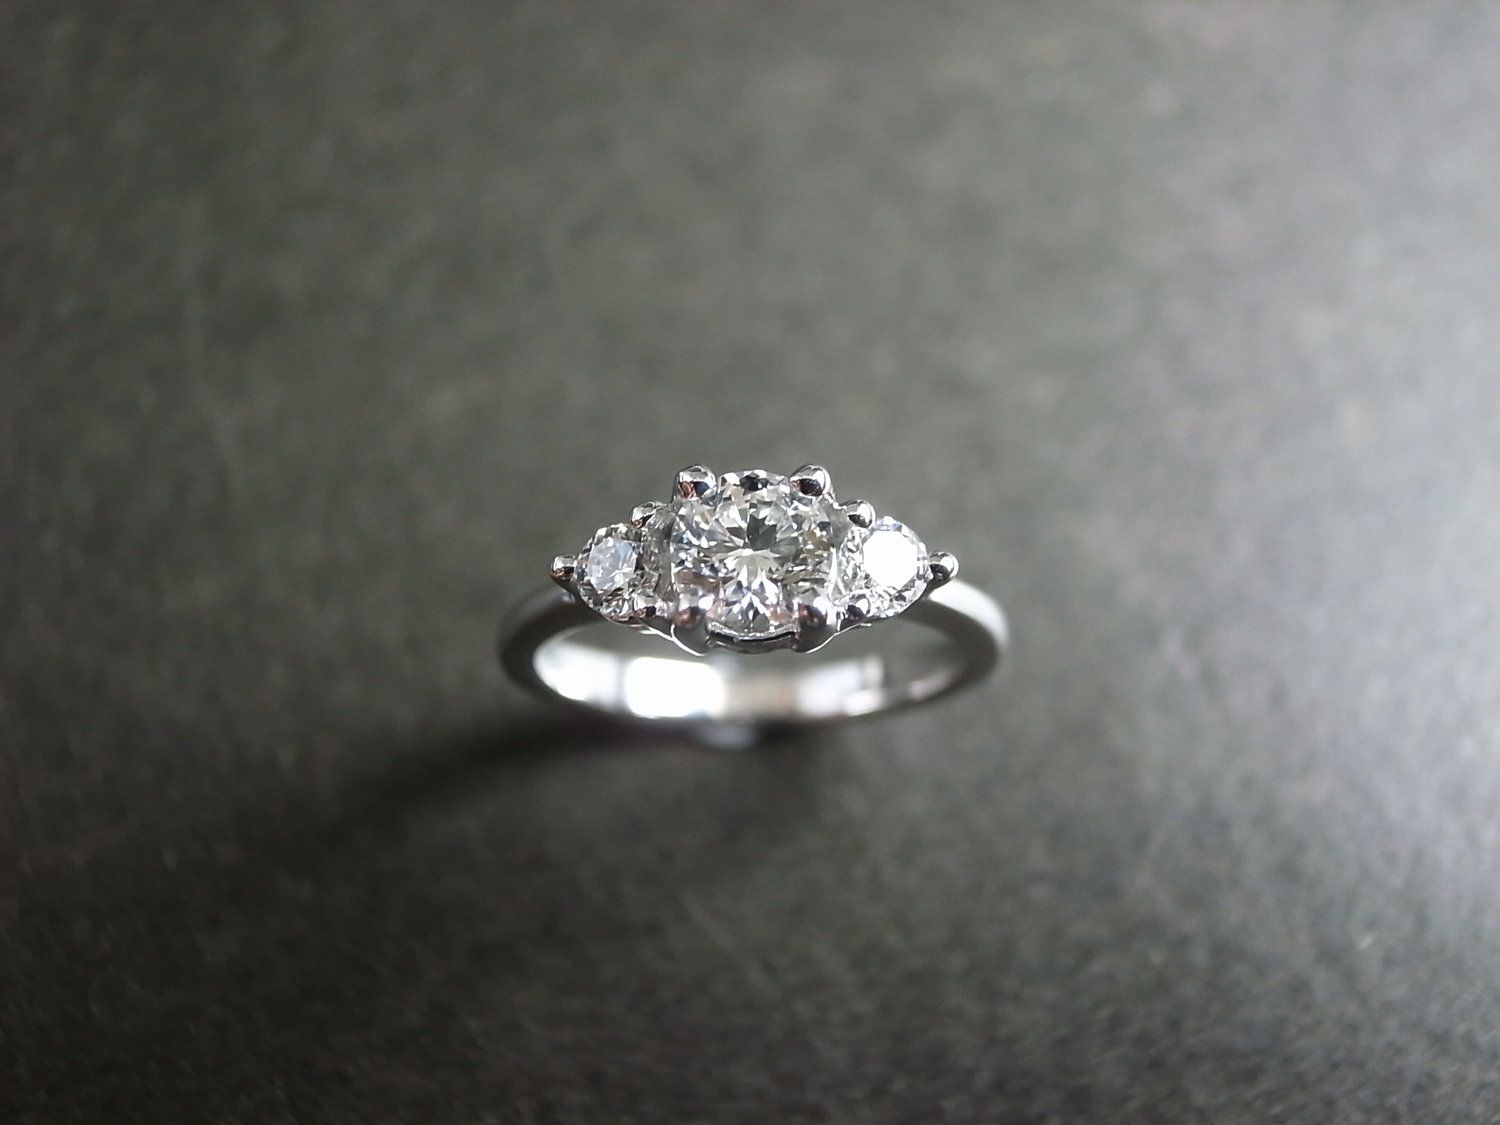 3 band wedding ring 3 stone engagement ring but with diamonds around the band part